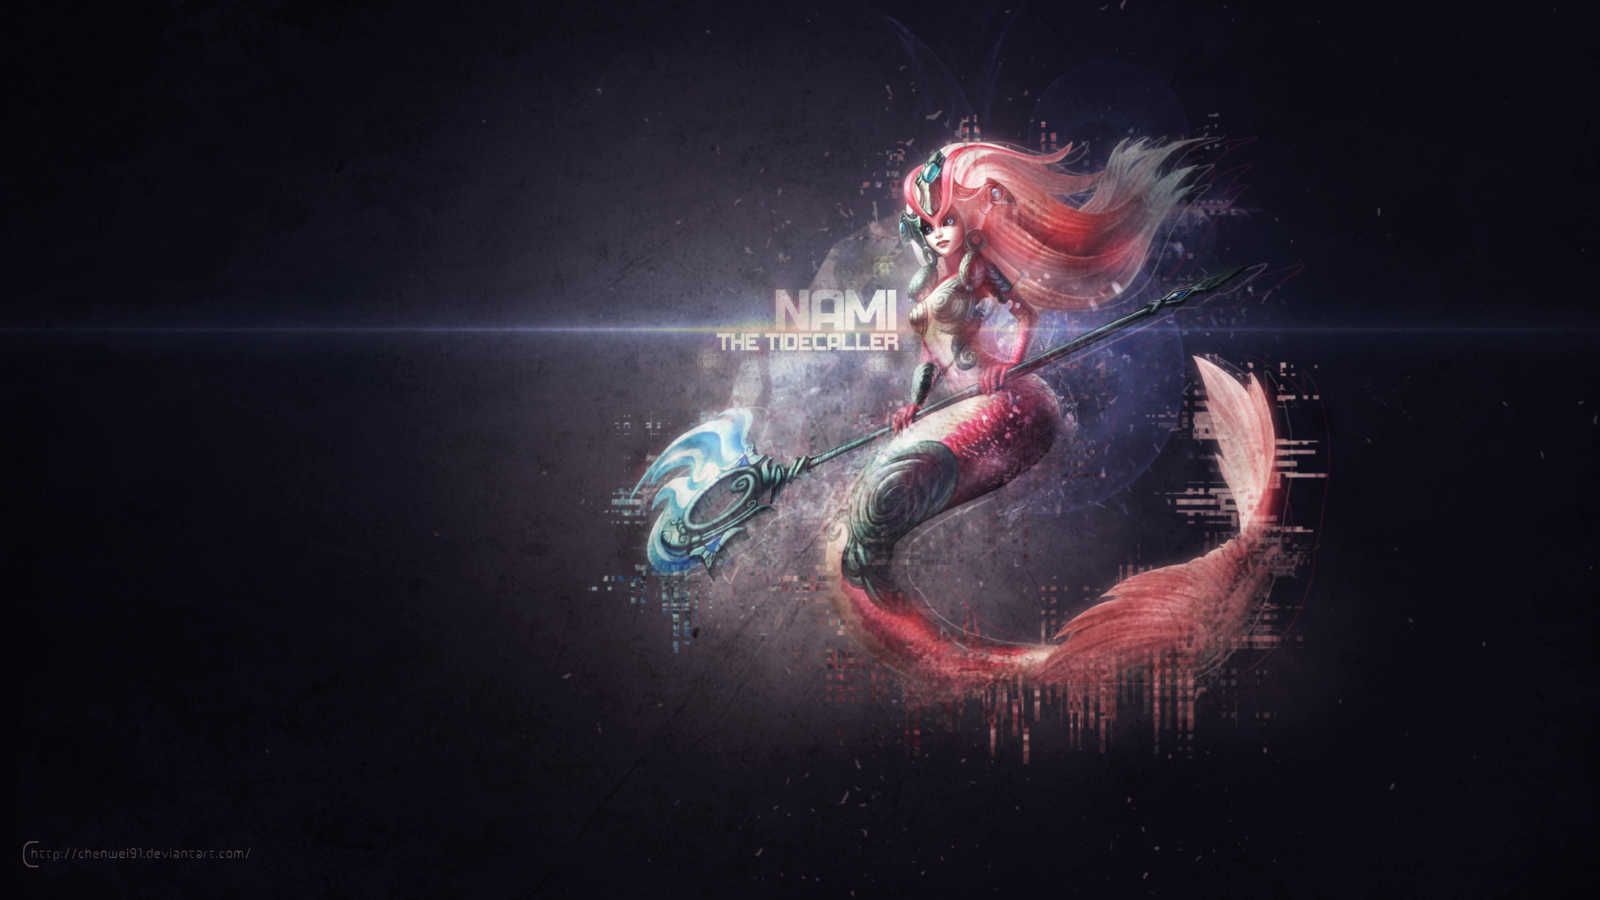 Nami League of Legends Wallpaper